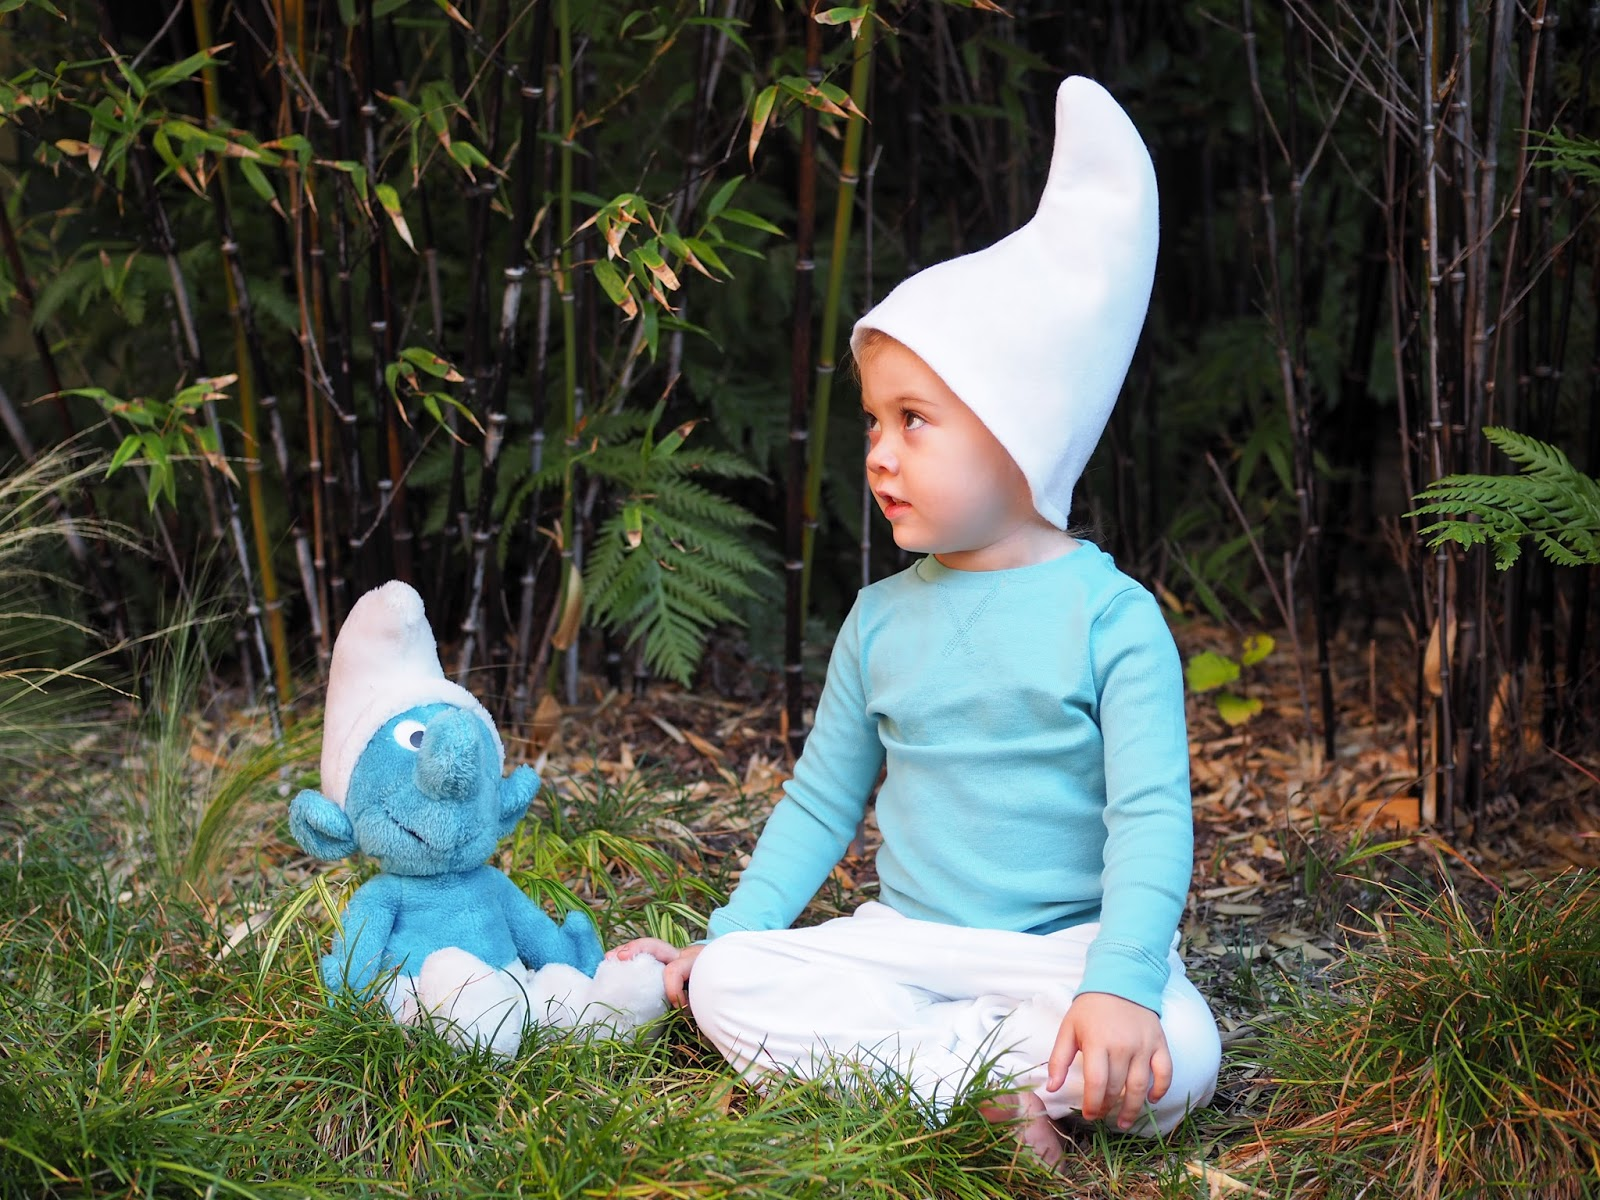 The rest of this costume is simply clothes that your child may already have in their closet or which can be found easily in stores or online.  sc 1 st  Little Hiccups & Little Hiccups: Last Minute Halloween DIY: Smurf Costume